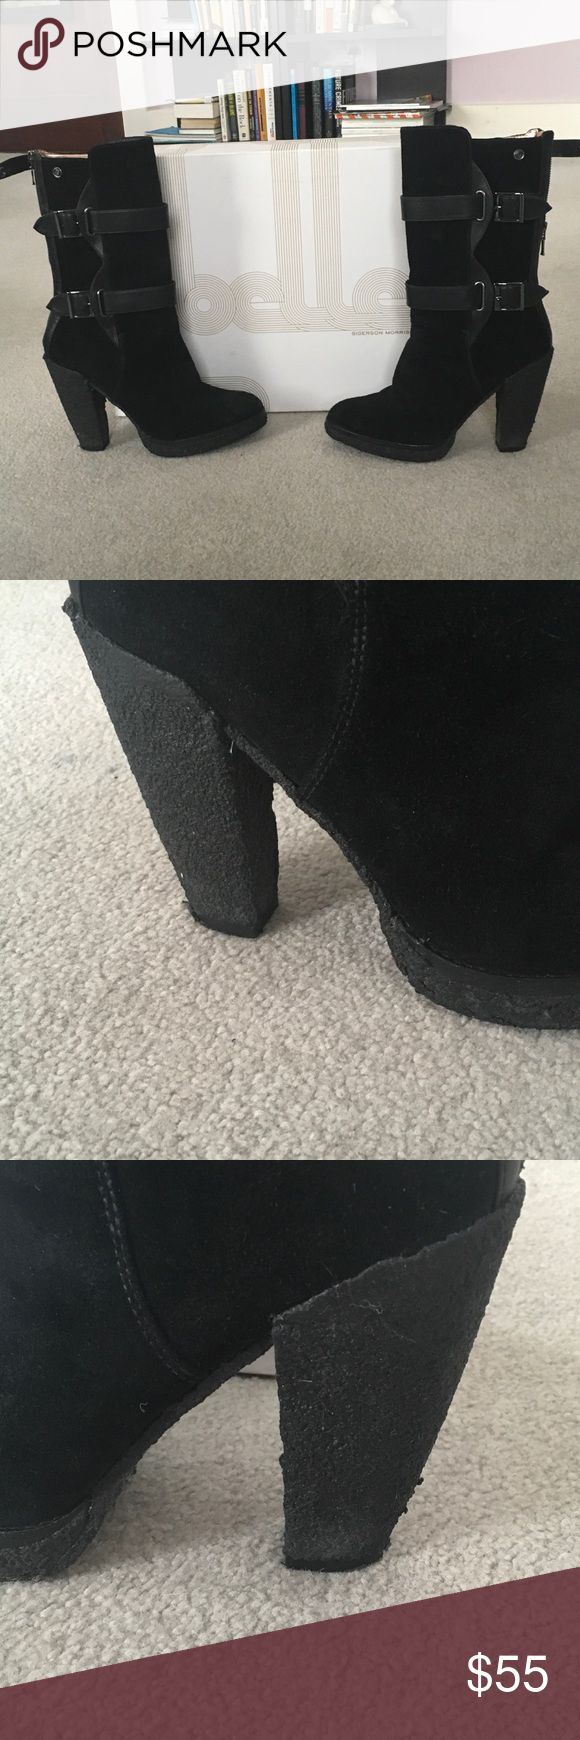 Supercool Belle by Sigerson Morrison Suede Boots Size 10, very comfortable.  Definitely worn, but still in good shape.  Hate to let them go but  need to make room in my closet! Belle by Sigerson Morrison Shoes Ankle Boots & Booties